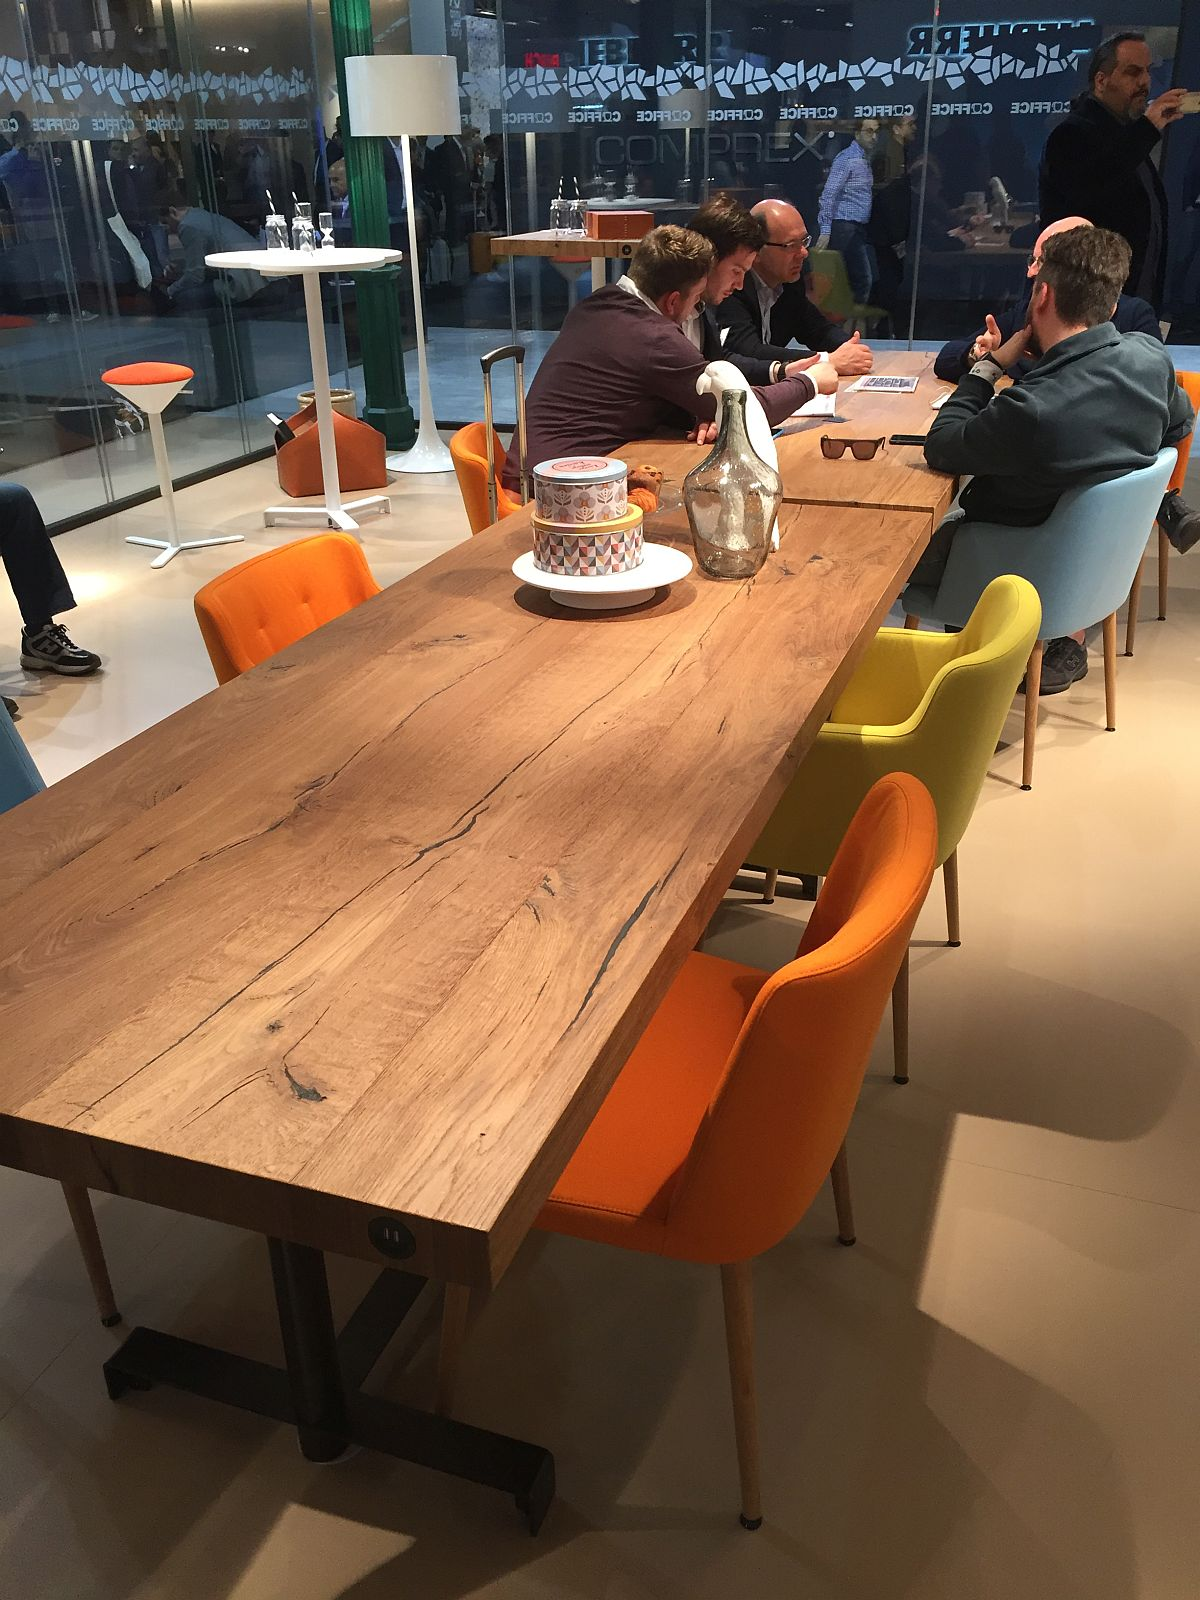 Create a cheerful kitchen and dining space experience with decor from Estel Group – Salone del Mobile 2016